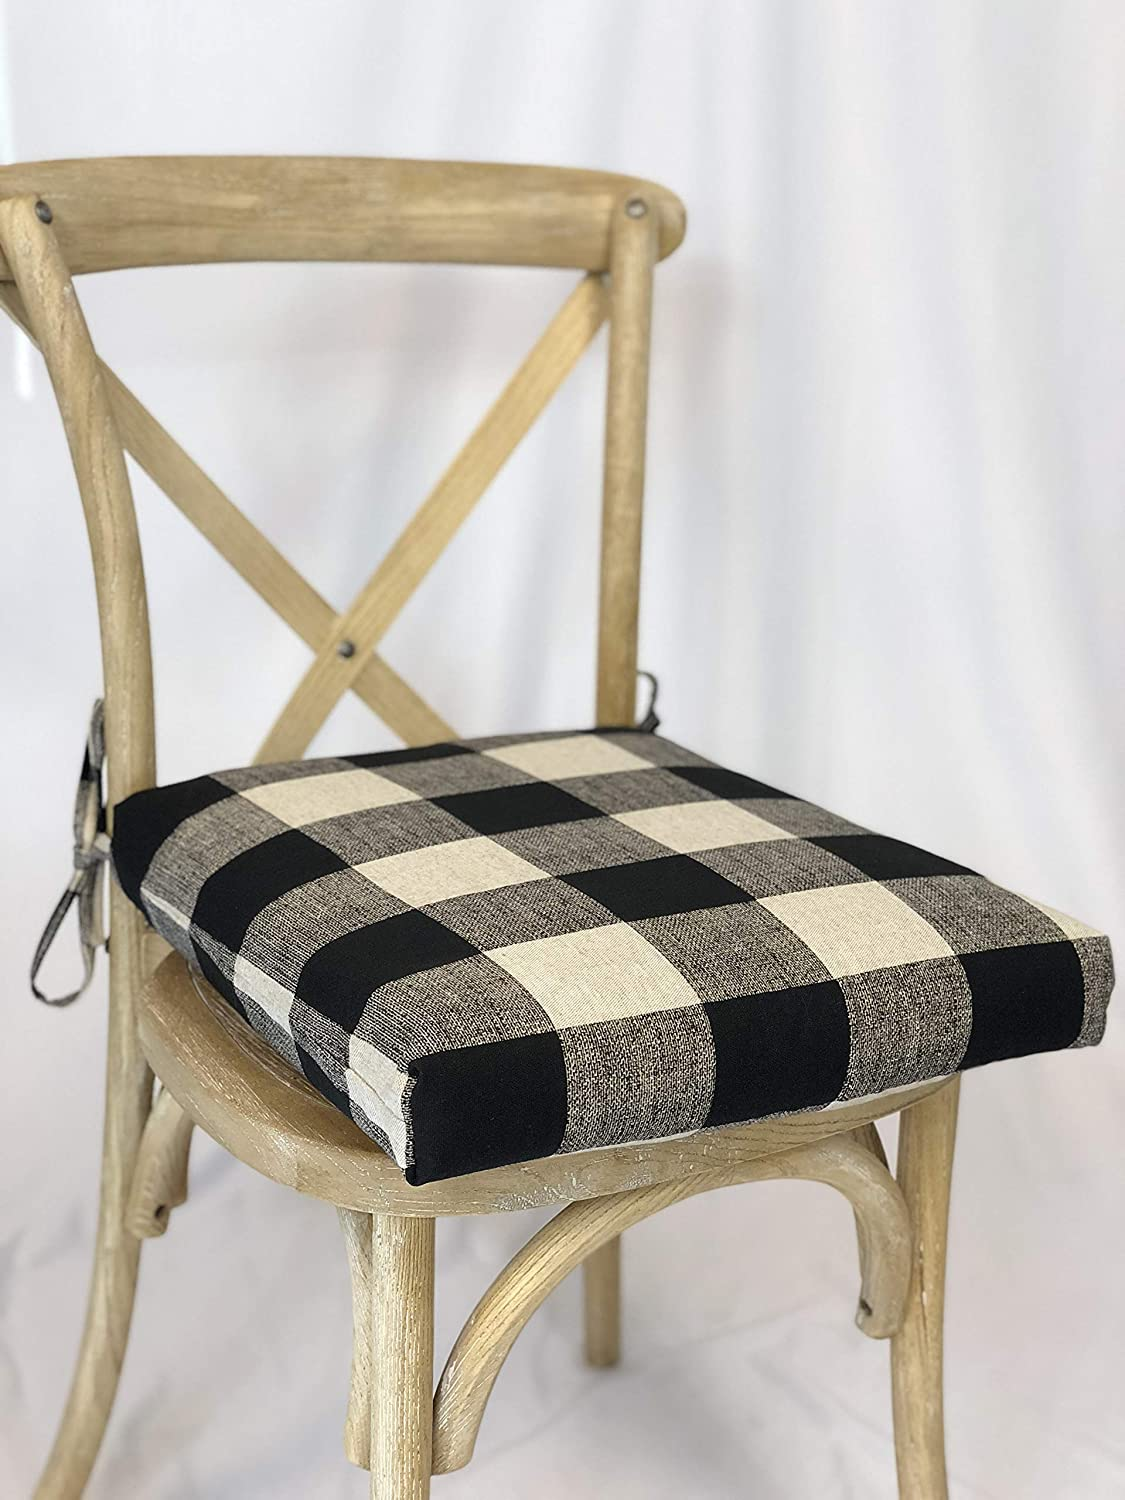 Chair Cushion Pad, with Buffalo Check themed fabric, seat cushion with ties  and removable foam insert Farmhouse Chair Cushions